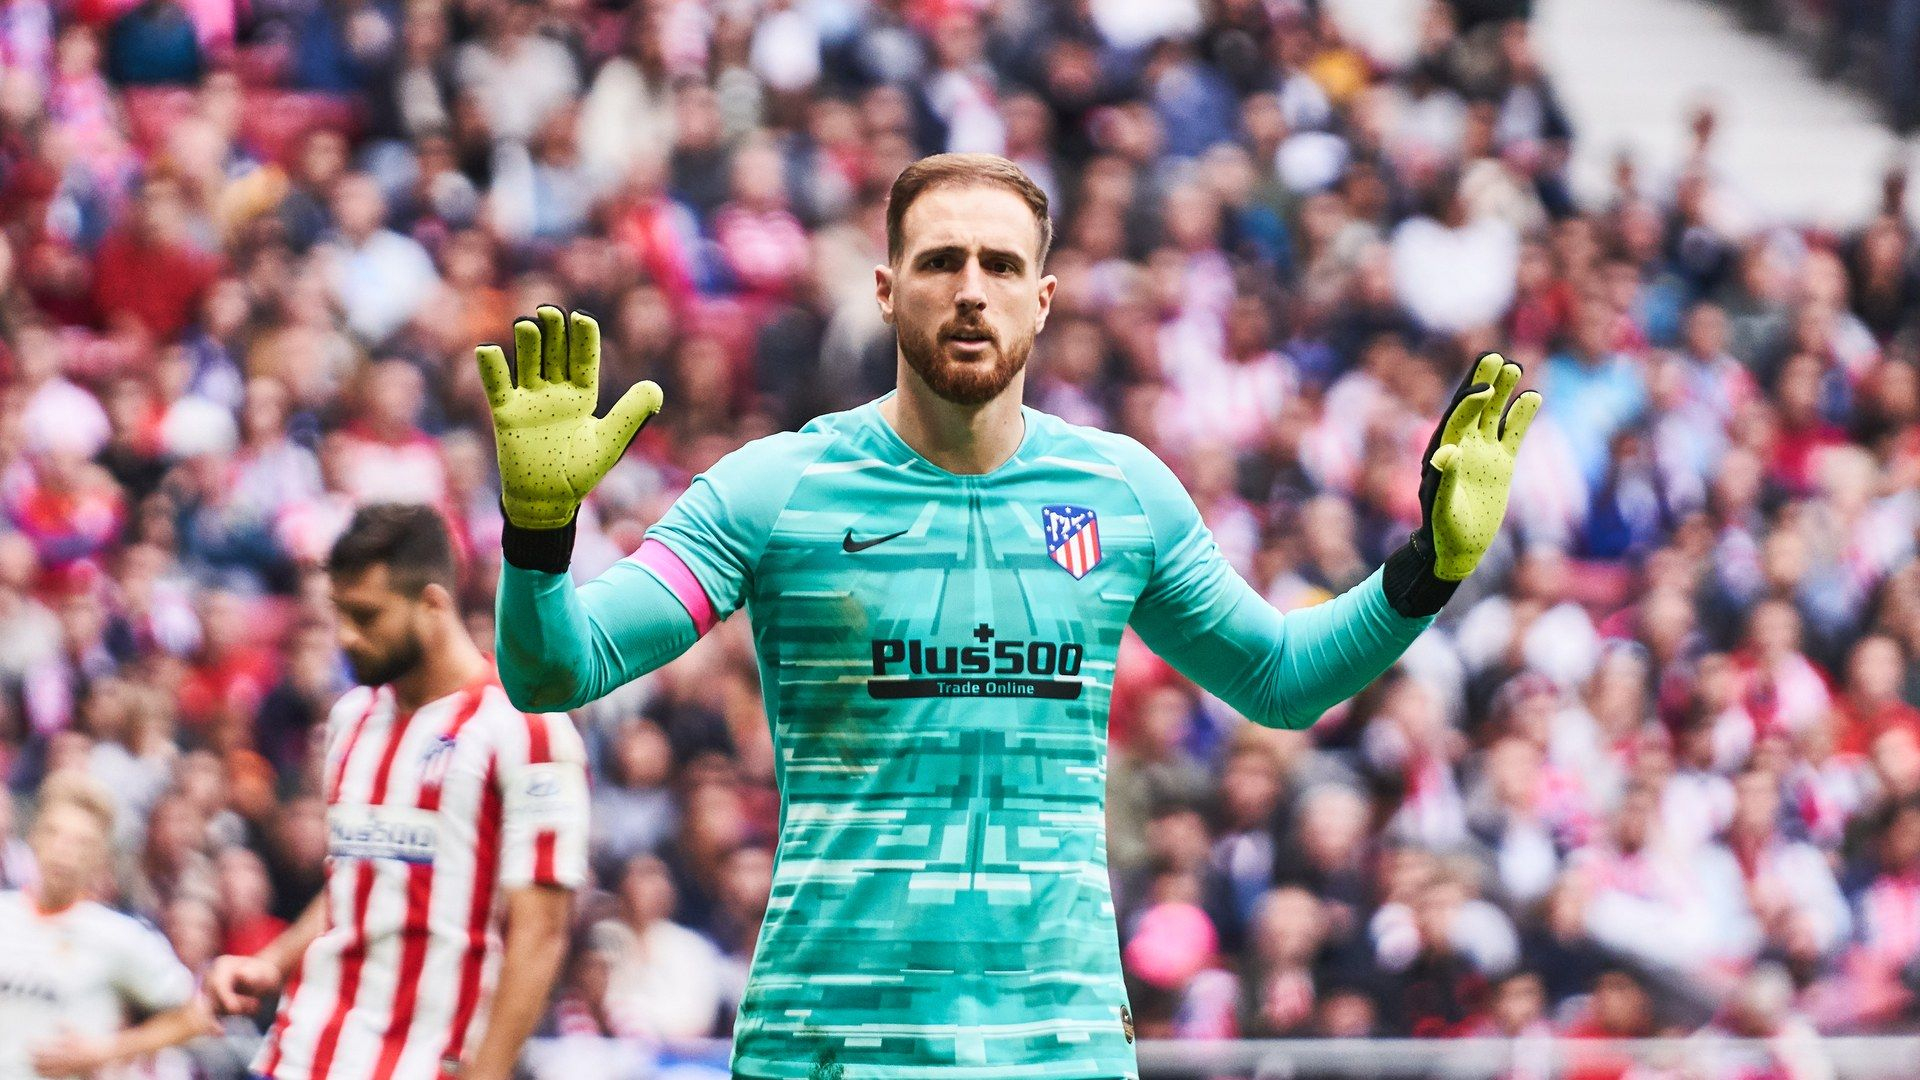 Football : Le Plus Bel Arrêt Du Week-End Est Signé Jan Oblak à Jeux De Foot Gardien De But